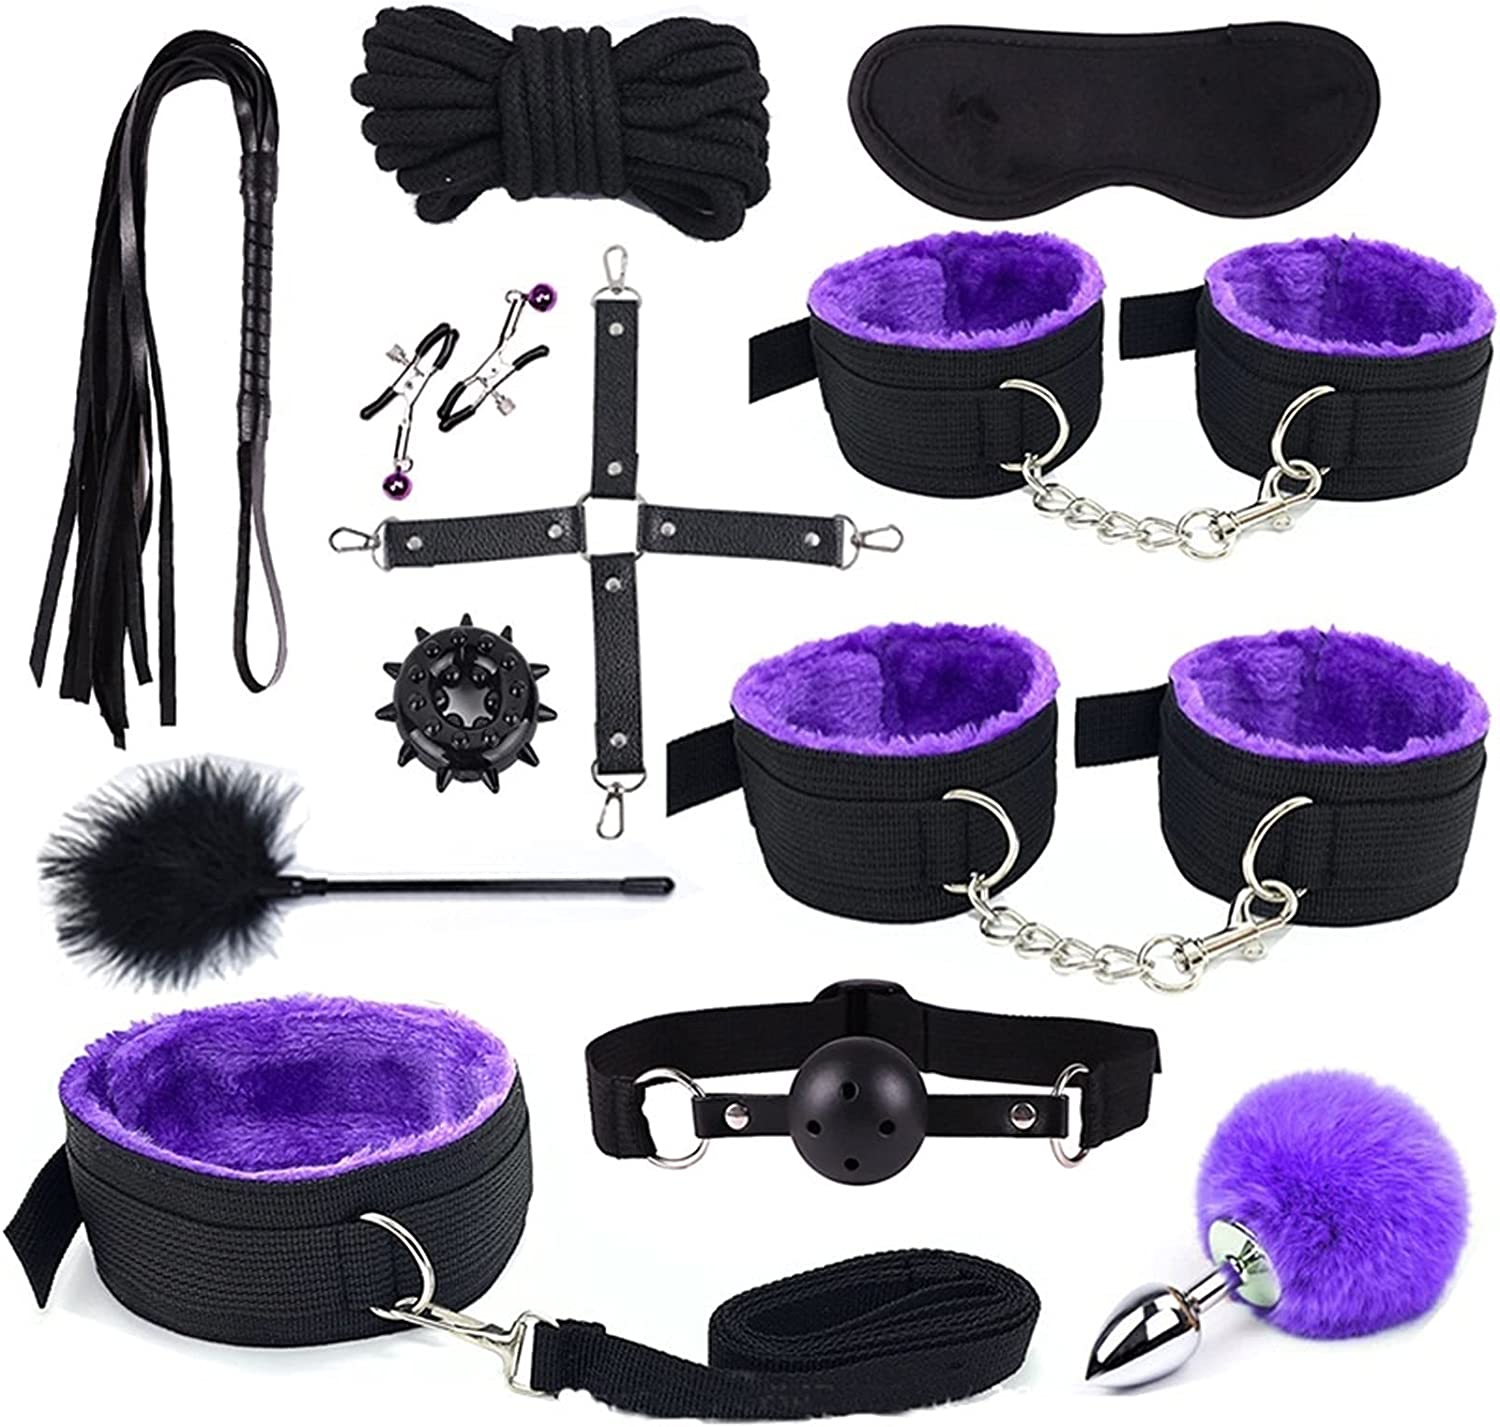 Outlet ☆ Free Shipping 12 Pcs Set Adult Fixed Bar Bondage Max 70% OFF S Sprẹạdẹr SM